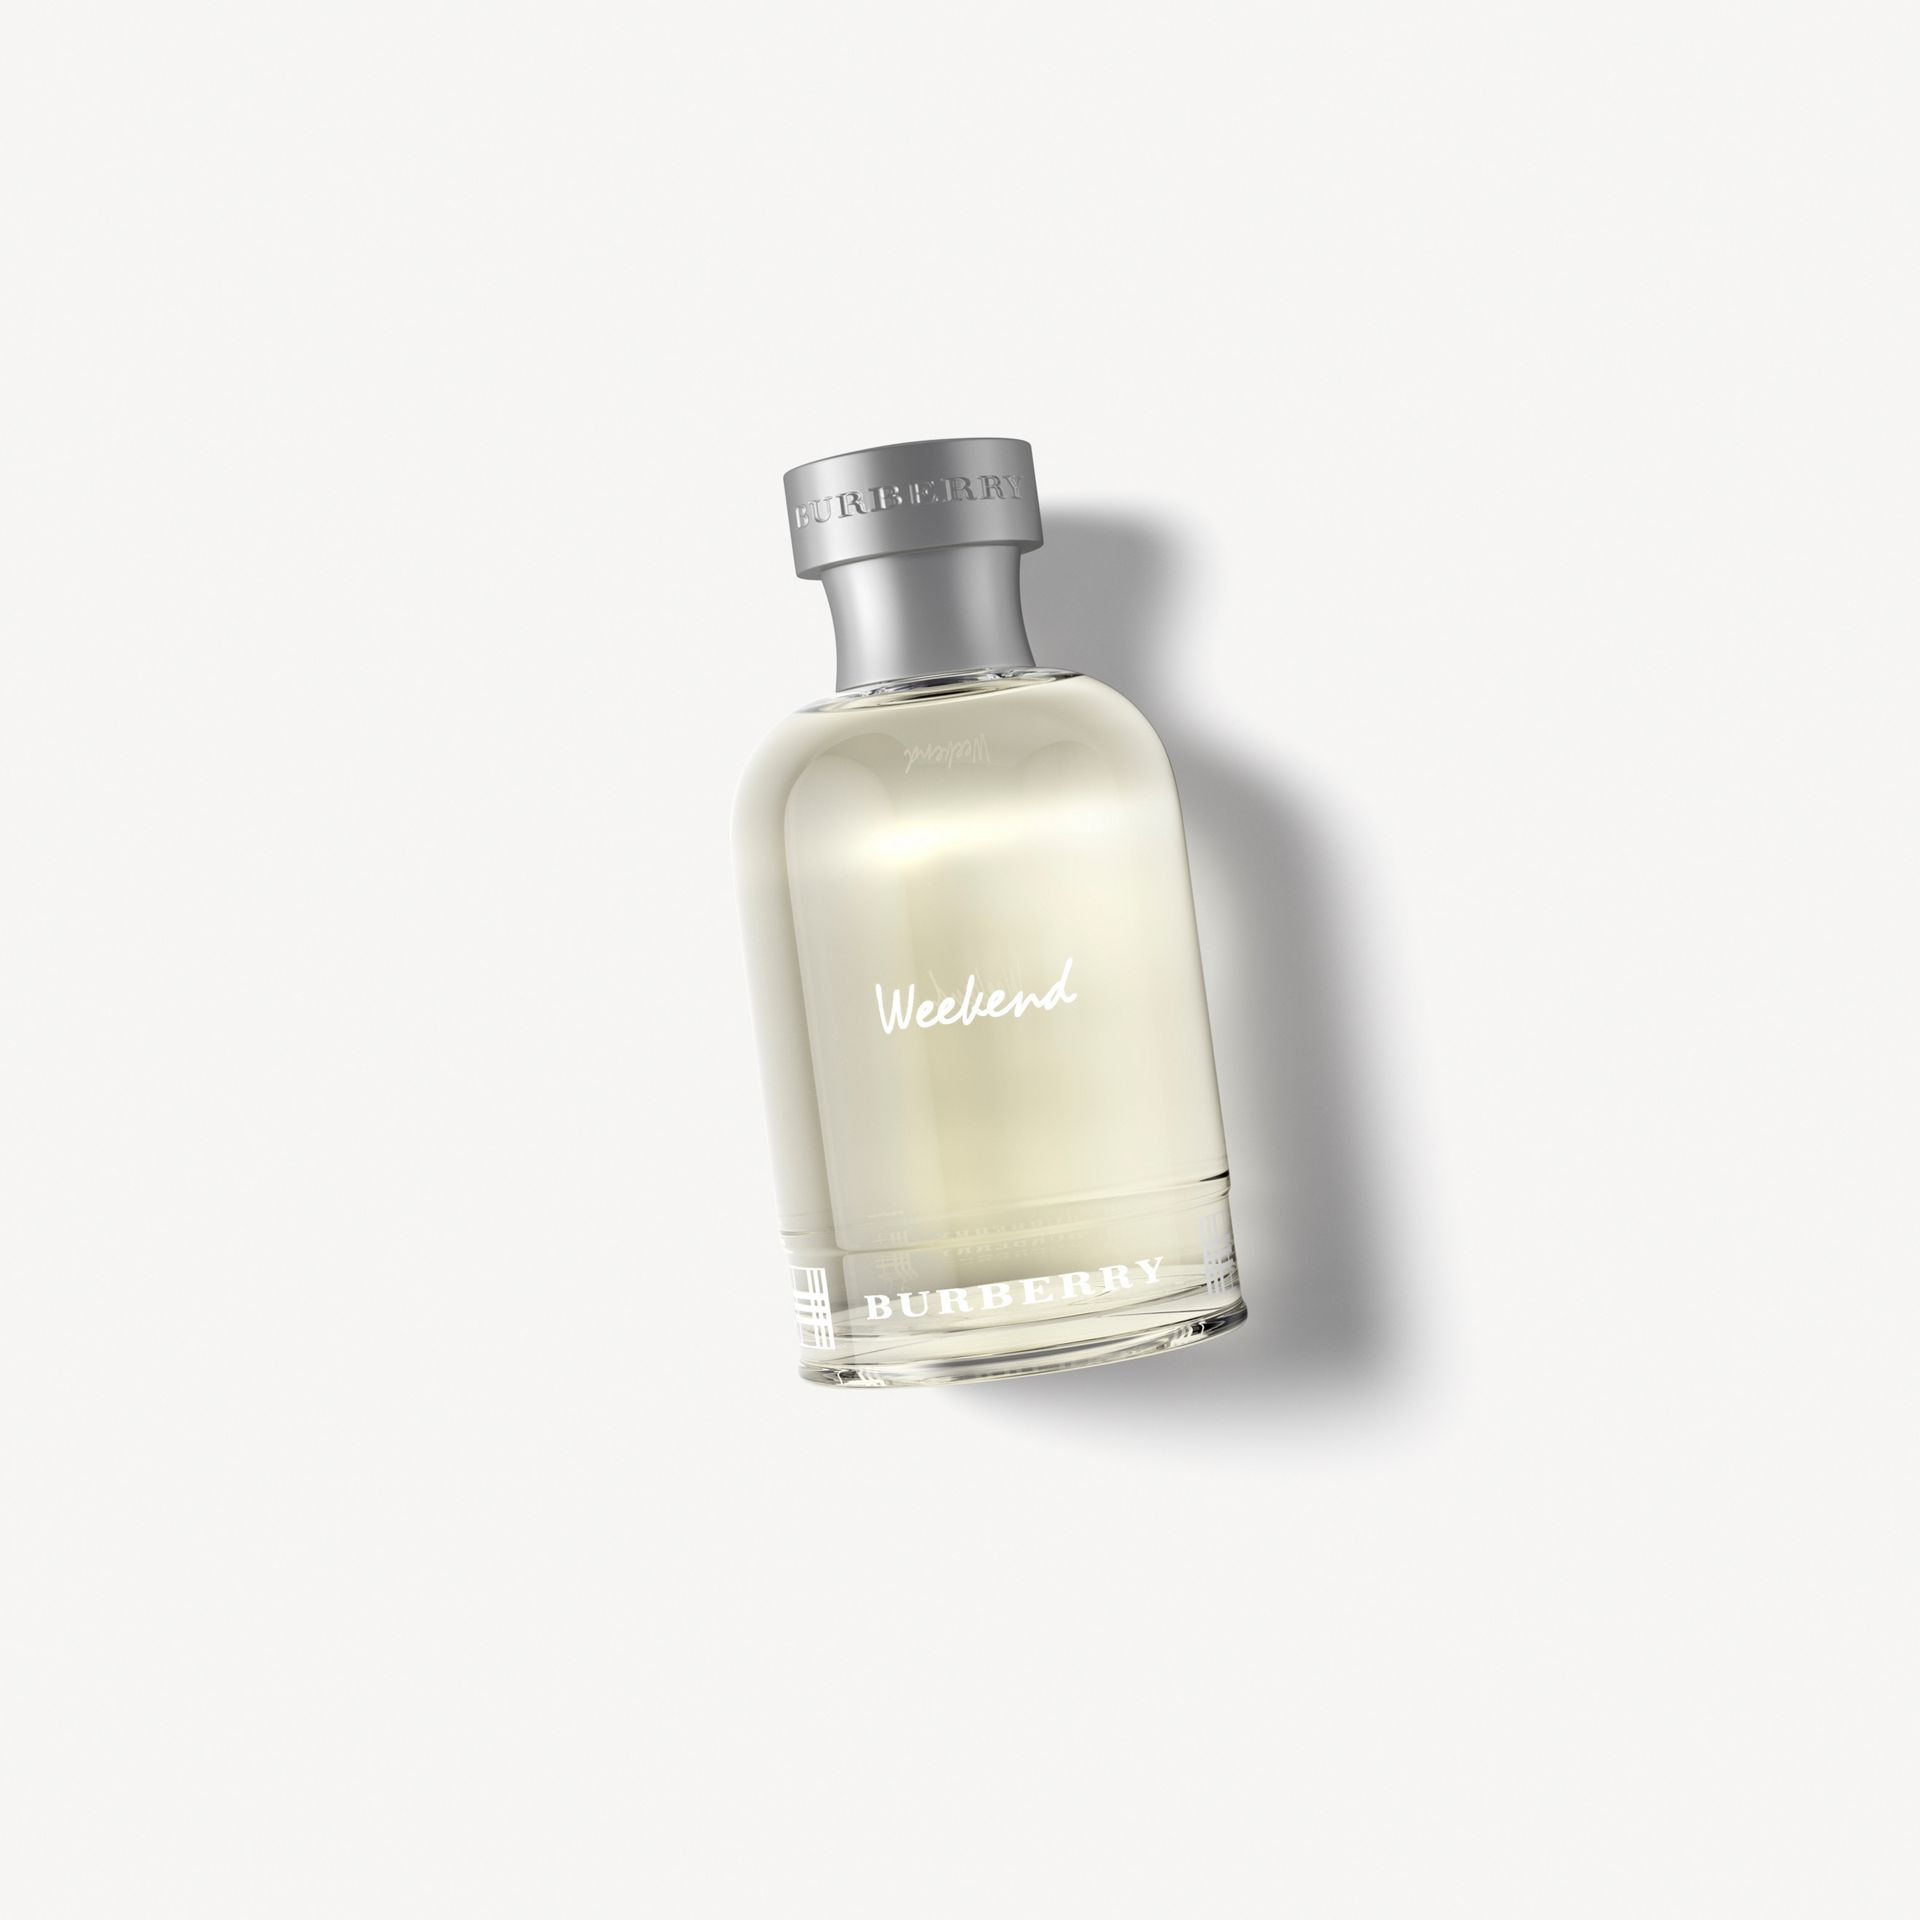 Burberry Weekend 淡香水 100ml - 圖庫照片 1